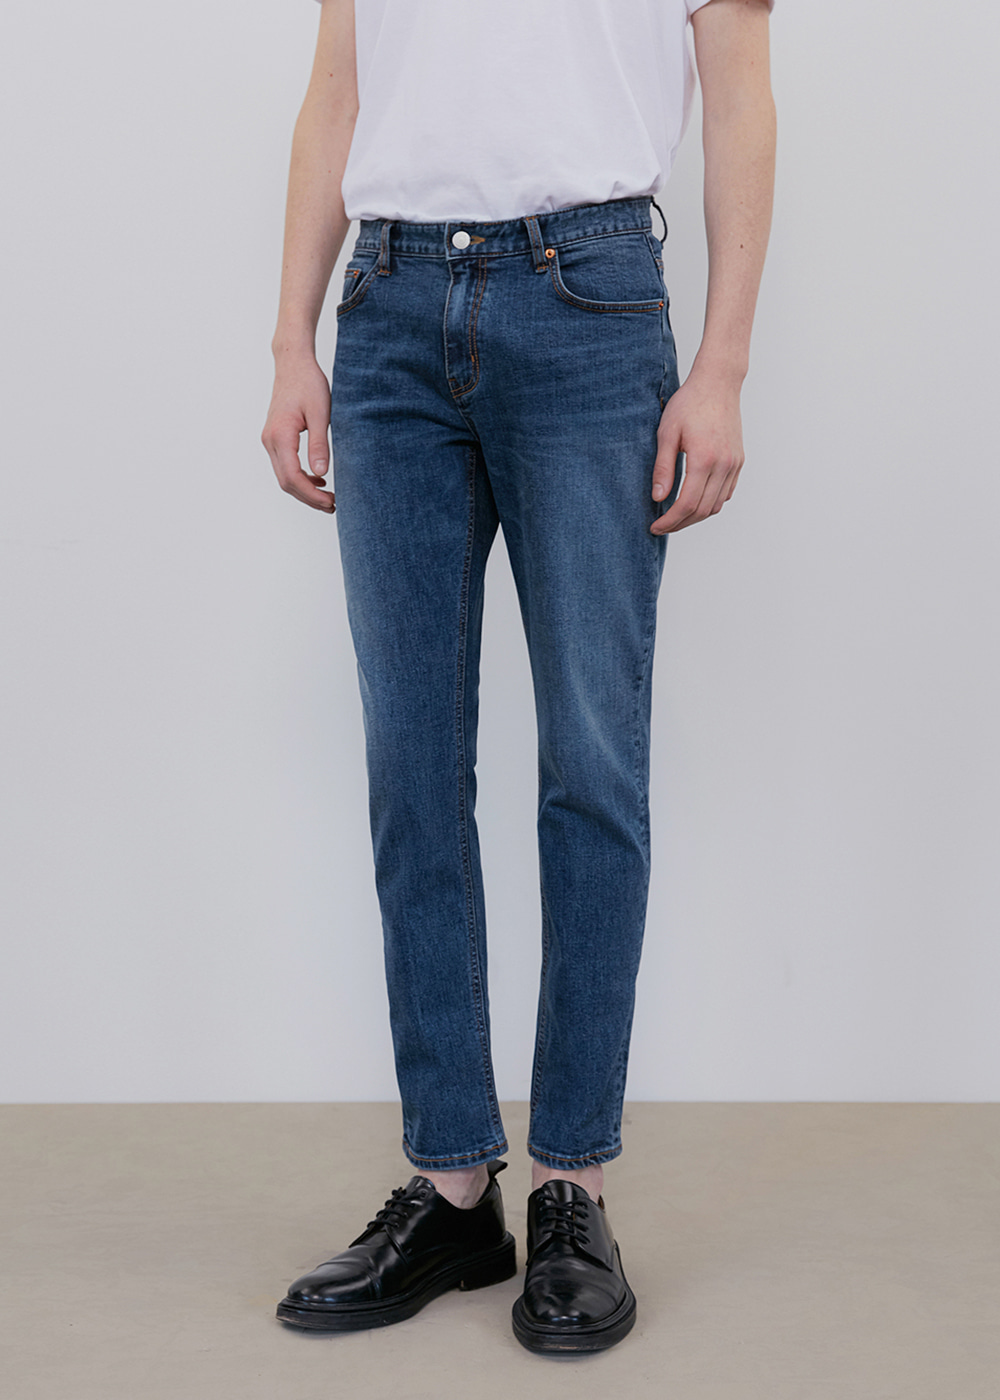 CROP JEANS IA [DEEP BLUE]